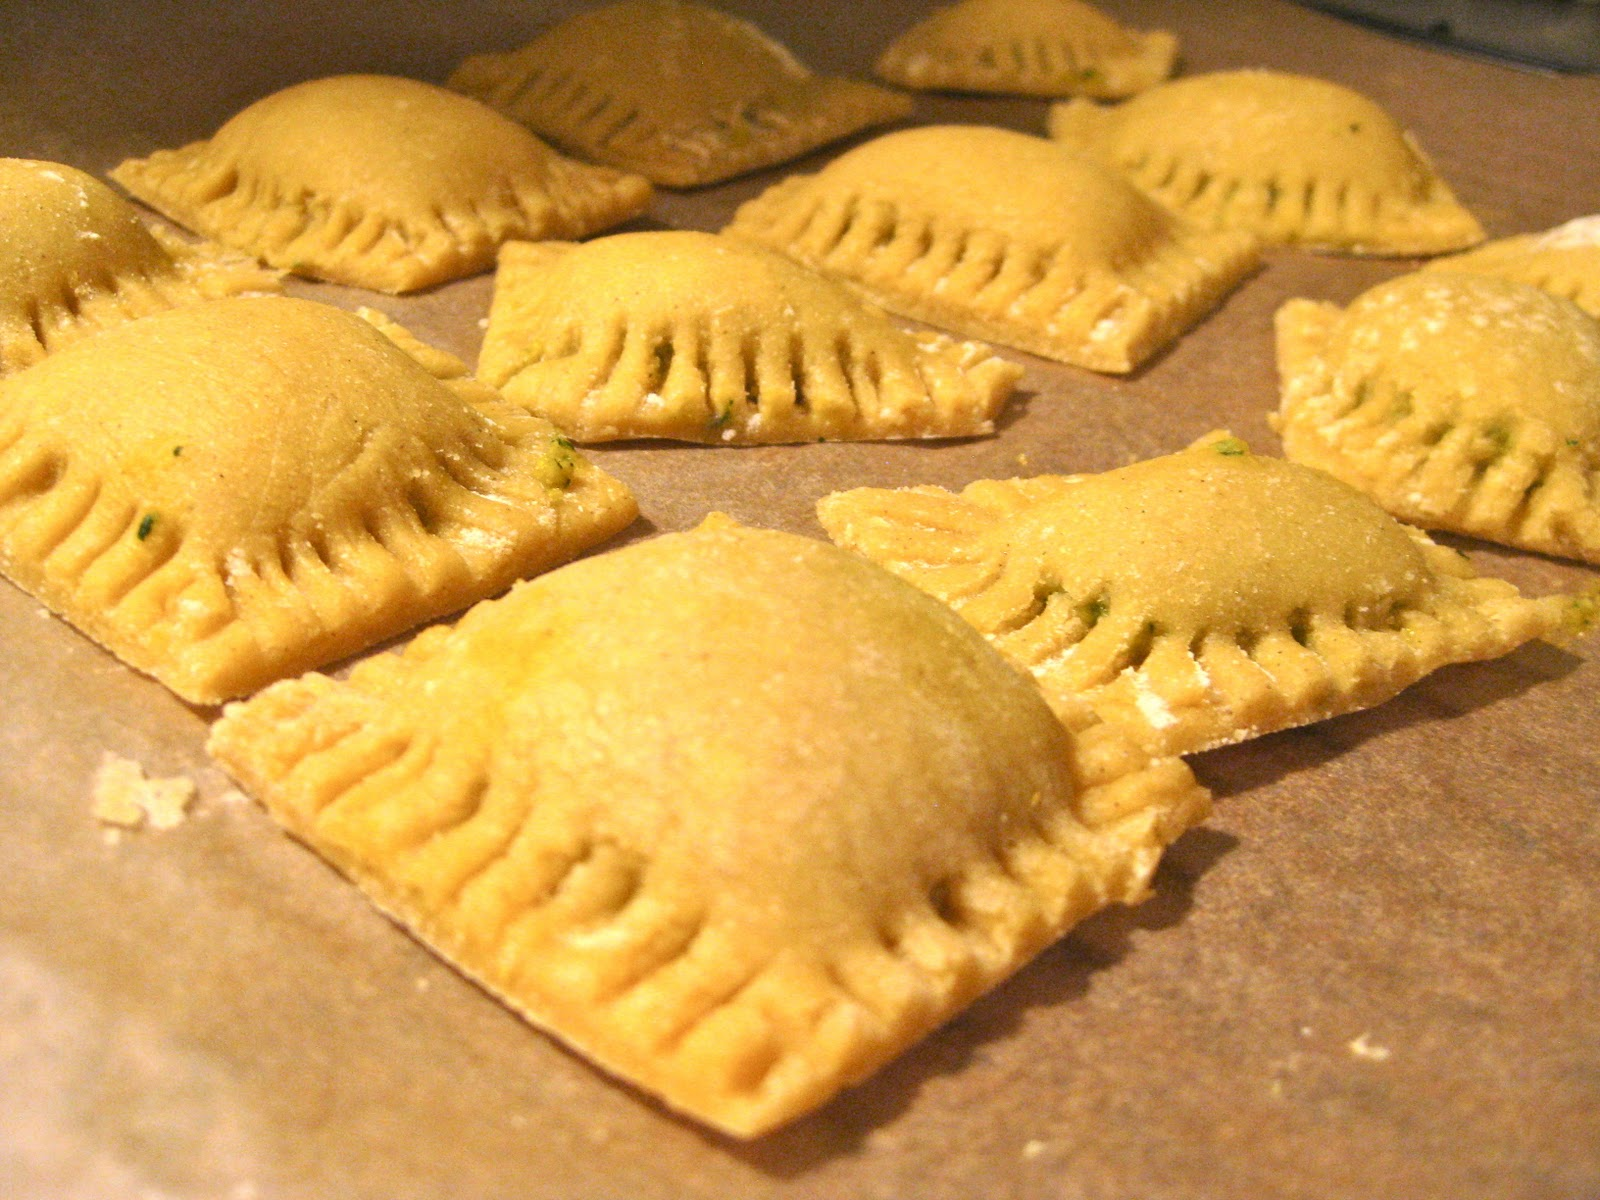 Handmade Gluten-free Raviolis with a Butternut Squash Filling - Simply ...